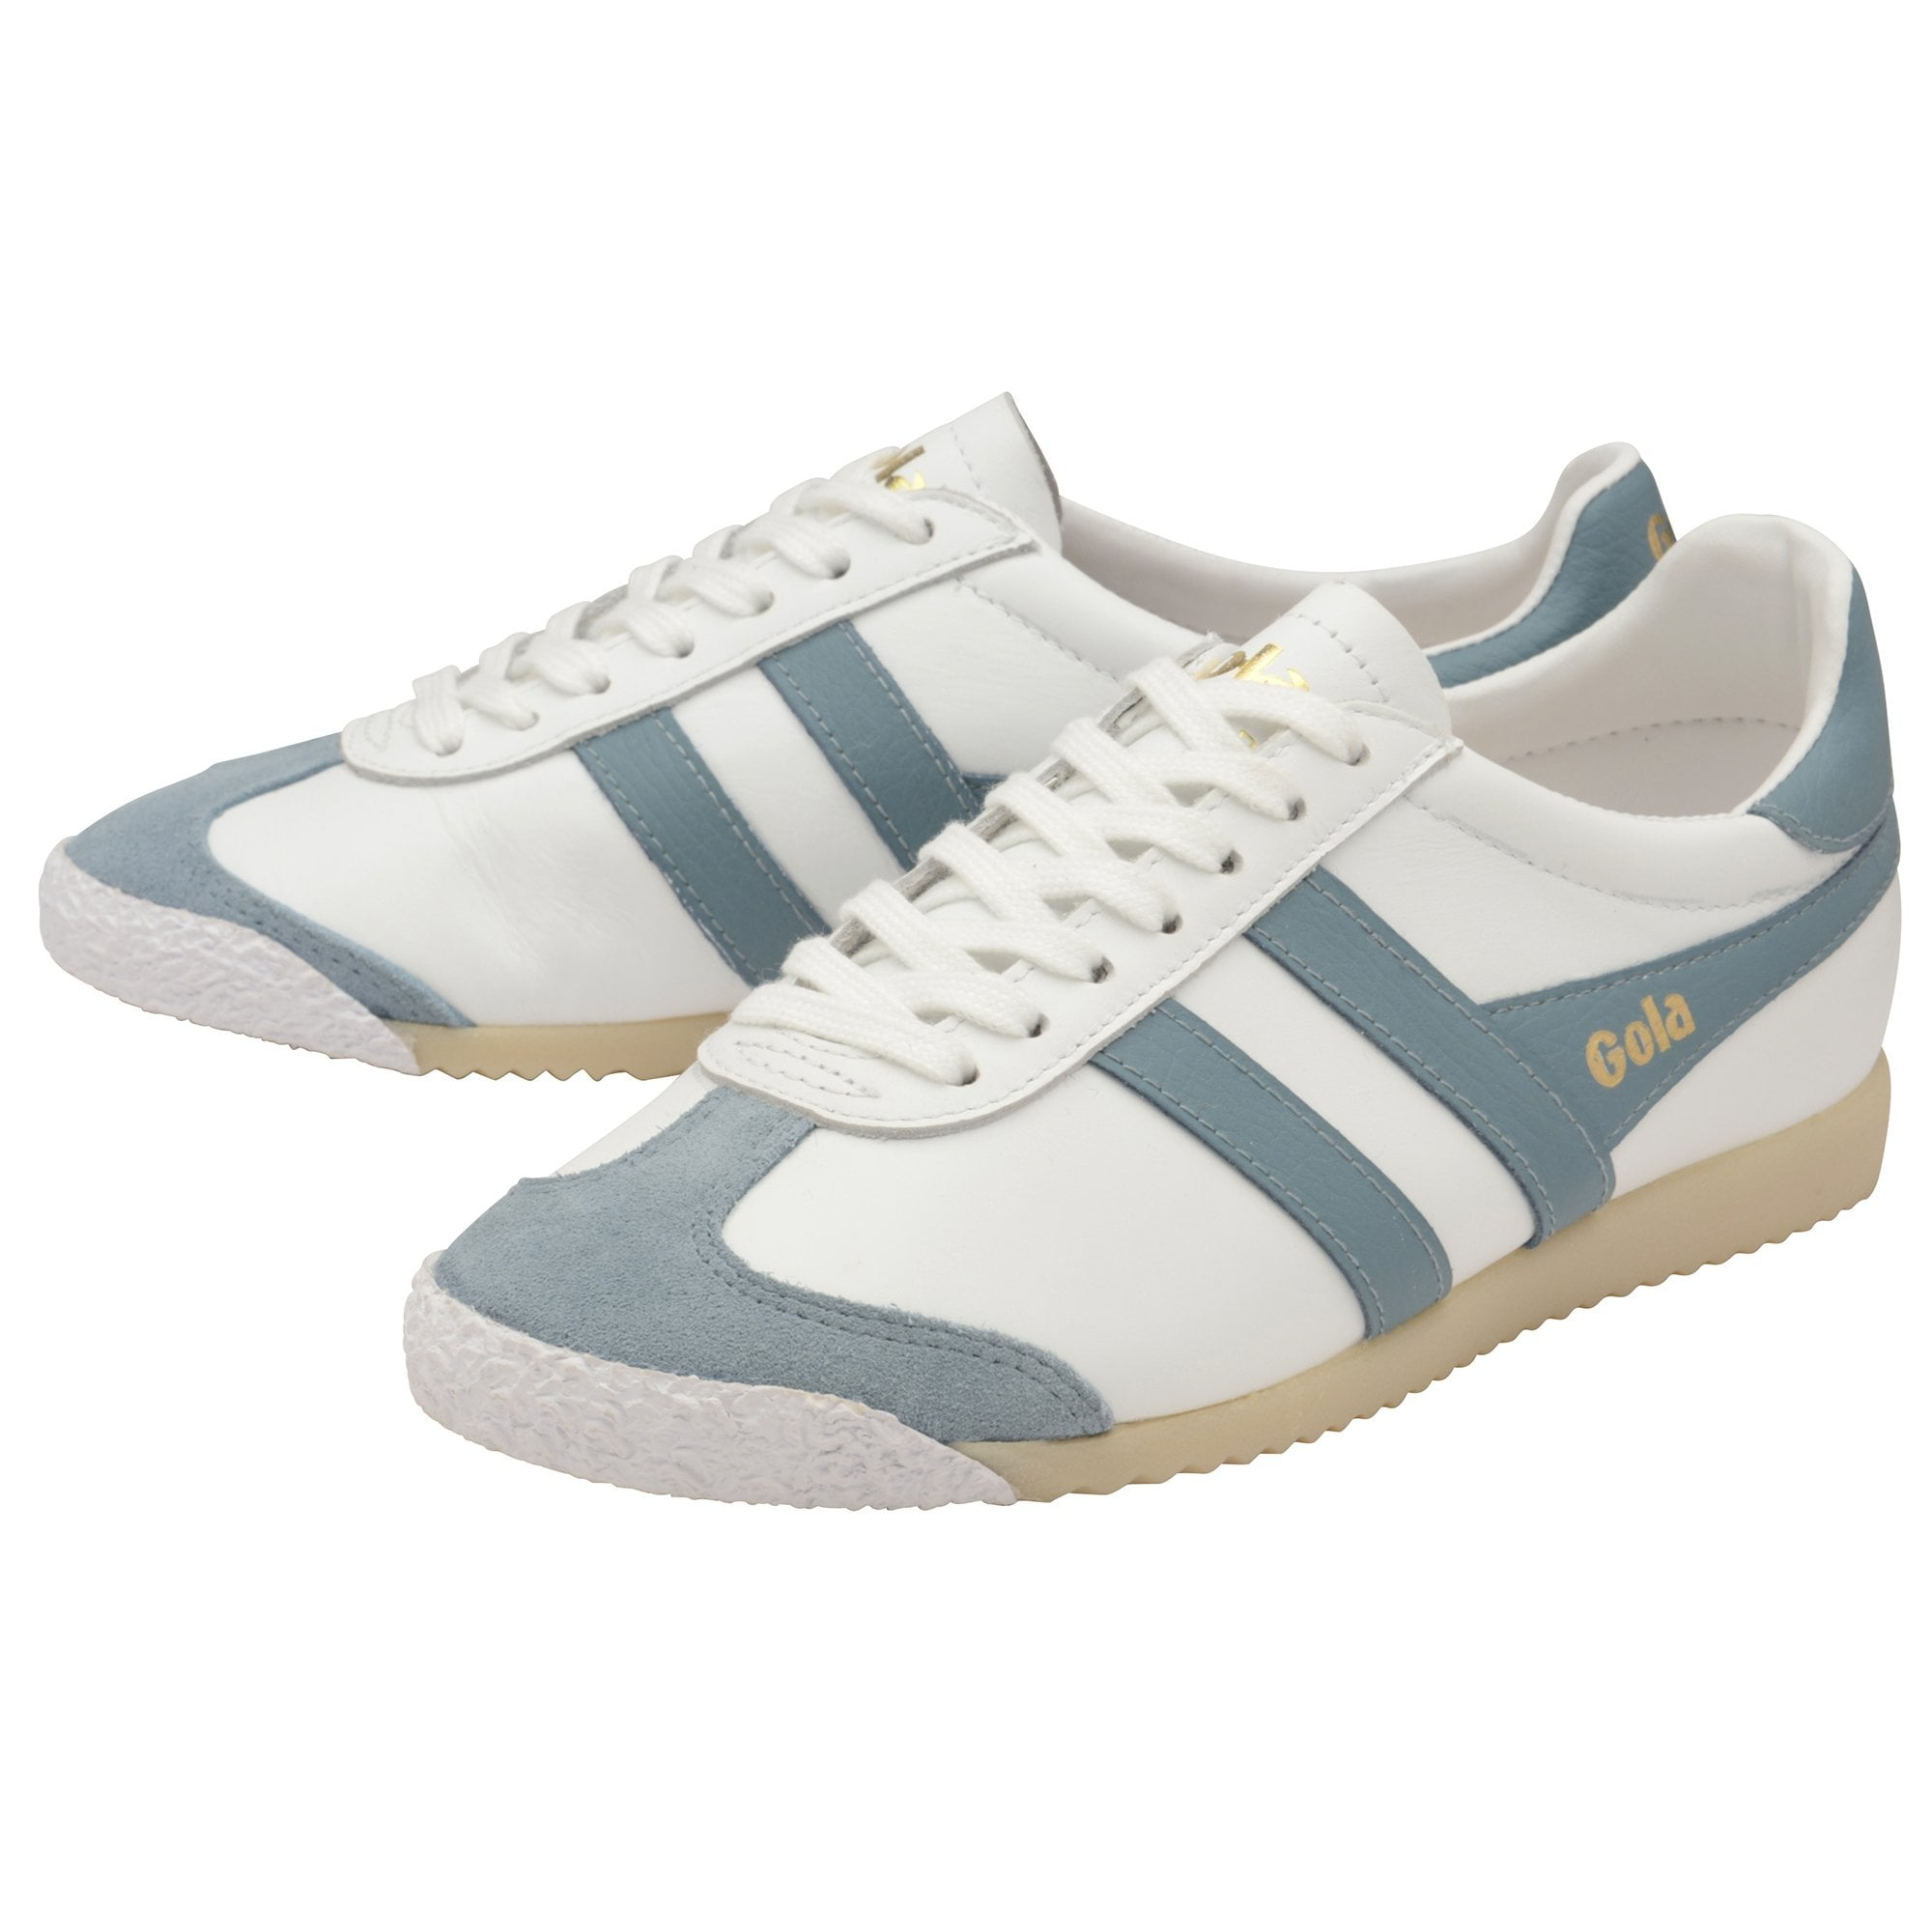 Women's Harrier 50 Leather Trainer